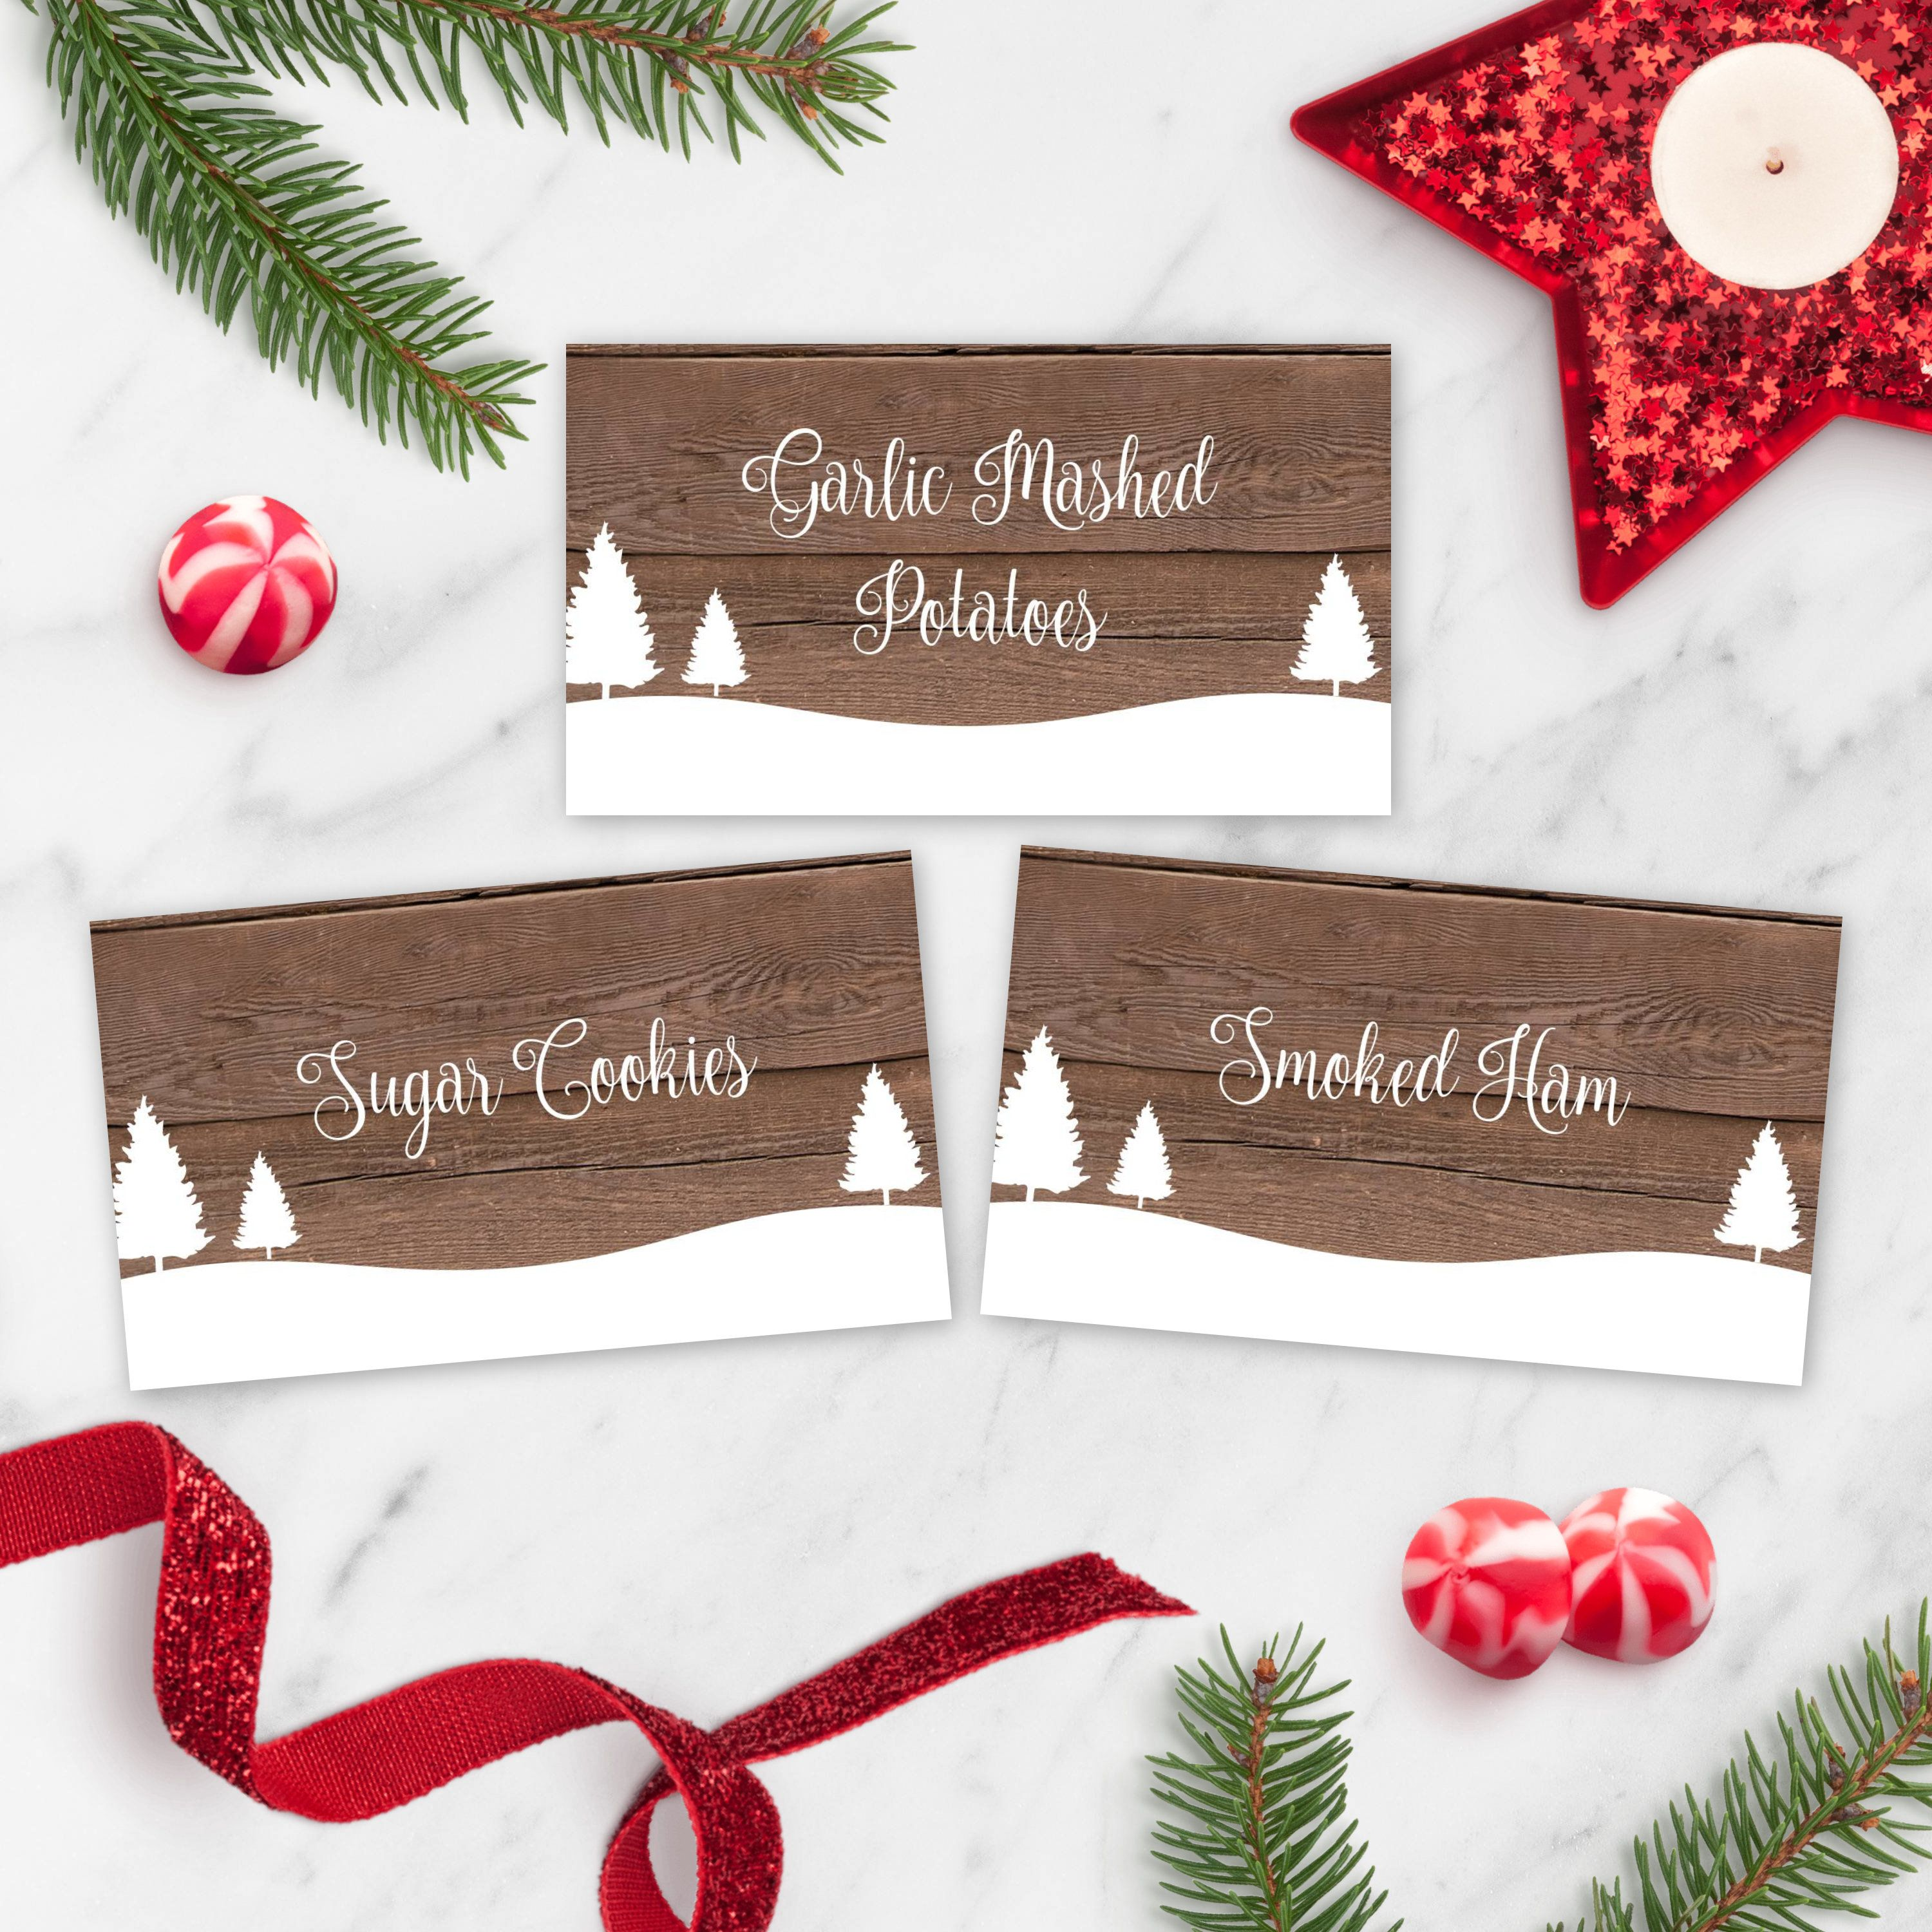 Holiday Party Buffet Cards Rustic Christmas Food Tent Card Etsy Holiday Party Buffet Tent Cards Christmas Party Table